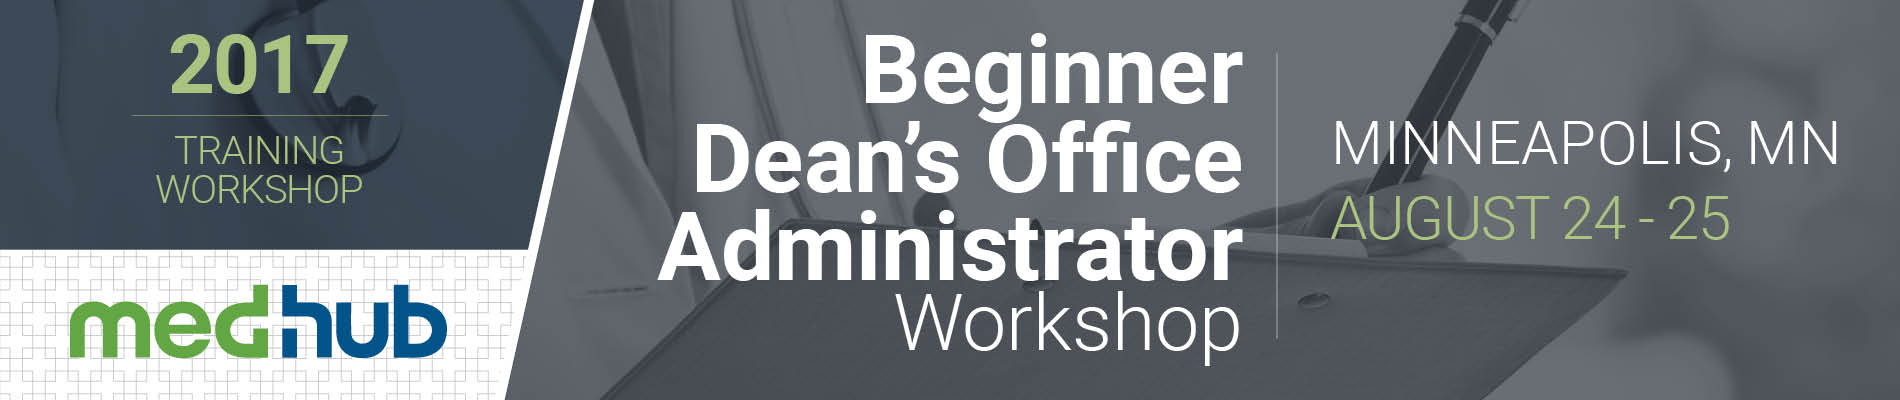 MedHub Beginner Dean's Office Administrator Workshop  (Aug 24-25)